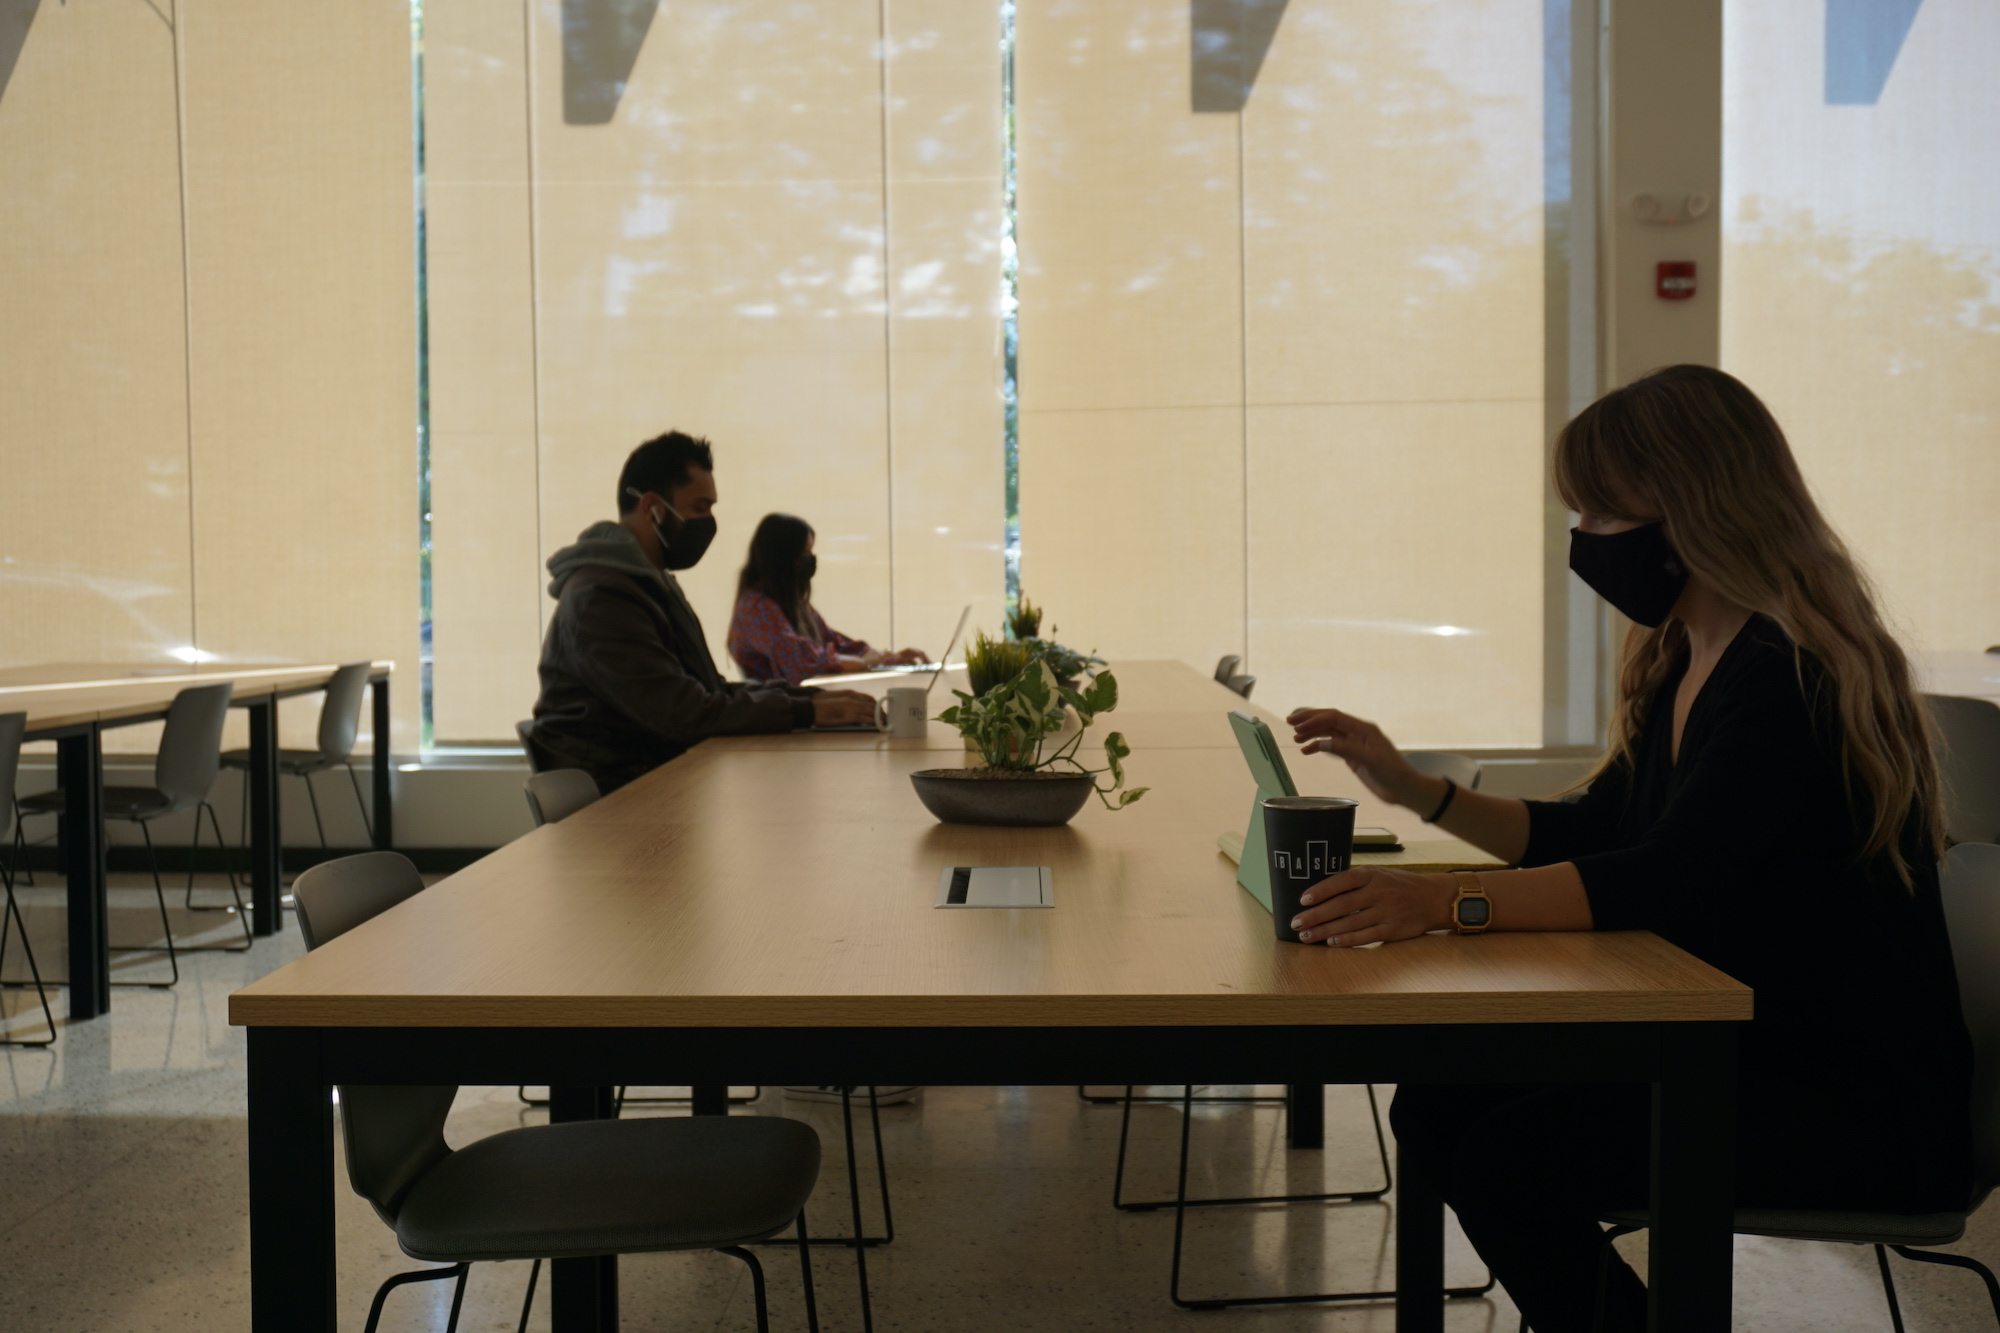 People working with laptops and cups in table at BASE co working space